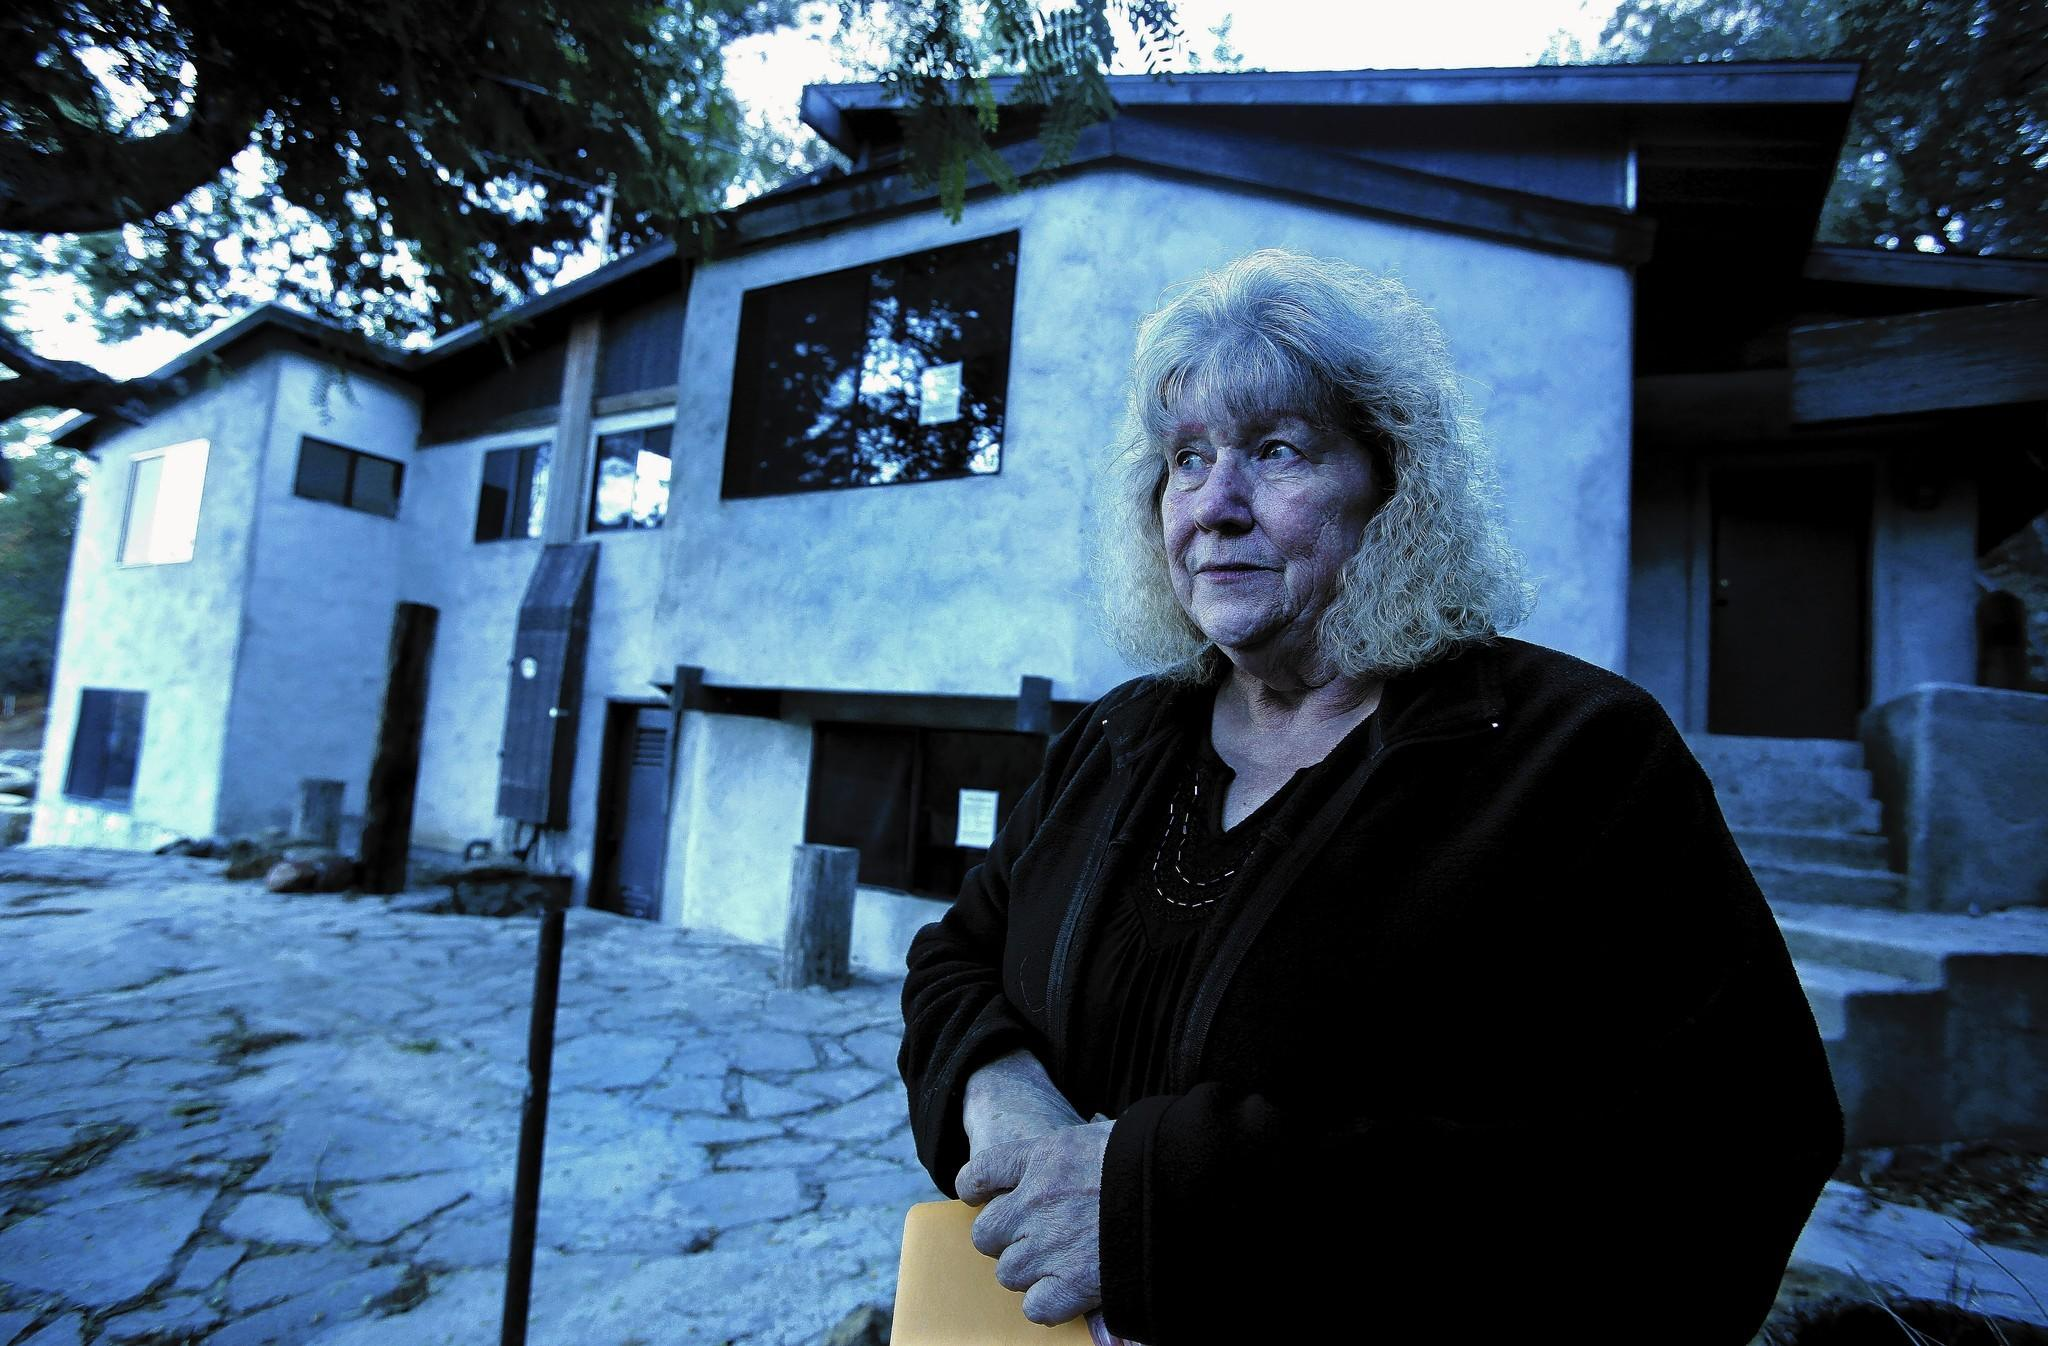 Joanne Finazzo, 67, had to move out of her home after Calabasas slapped the property with code violations and it ended up in foreclosure. The bank is expected to raze it. She and other owners of older homes say they think they're being unfairly targeted.